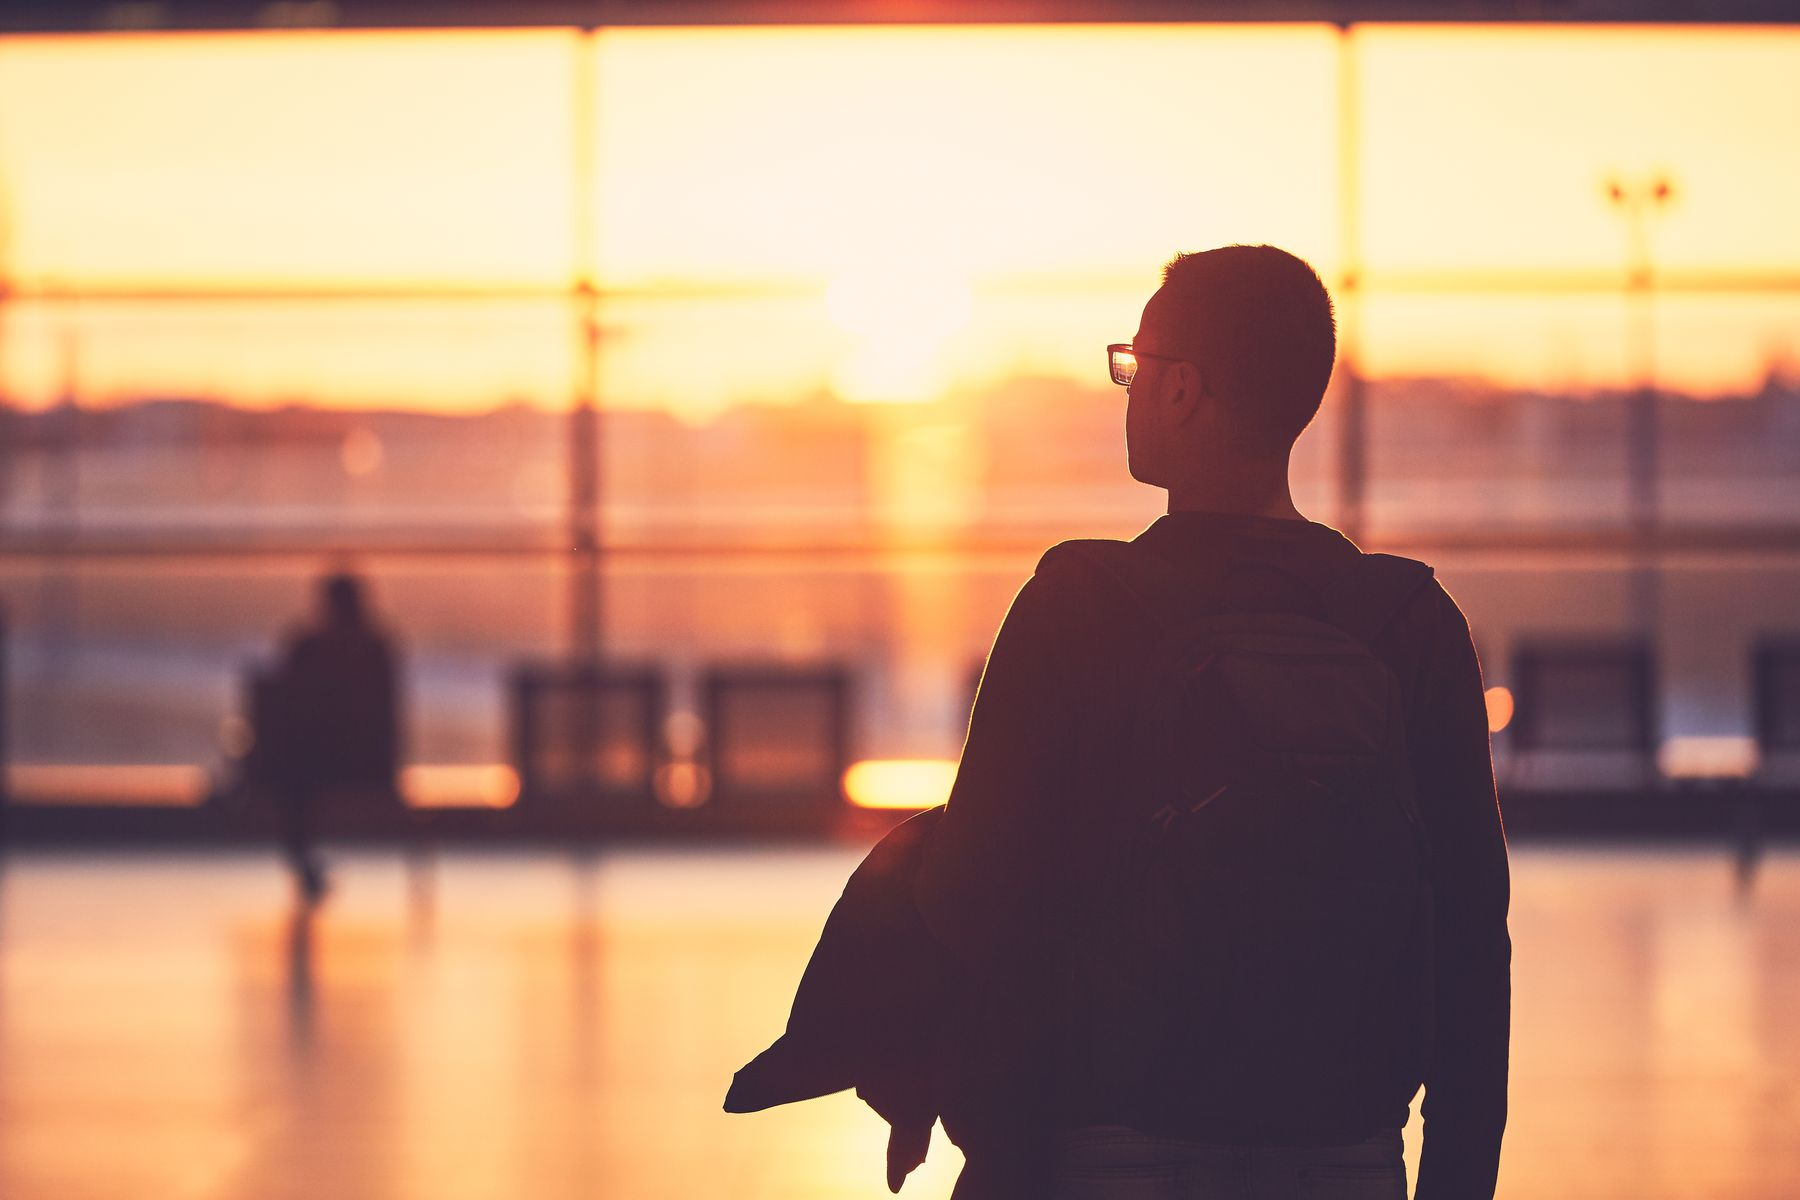 Man looking out the window at sunset inside an airport